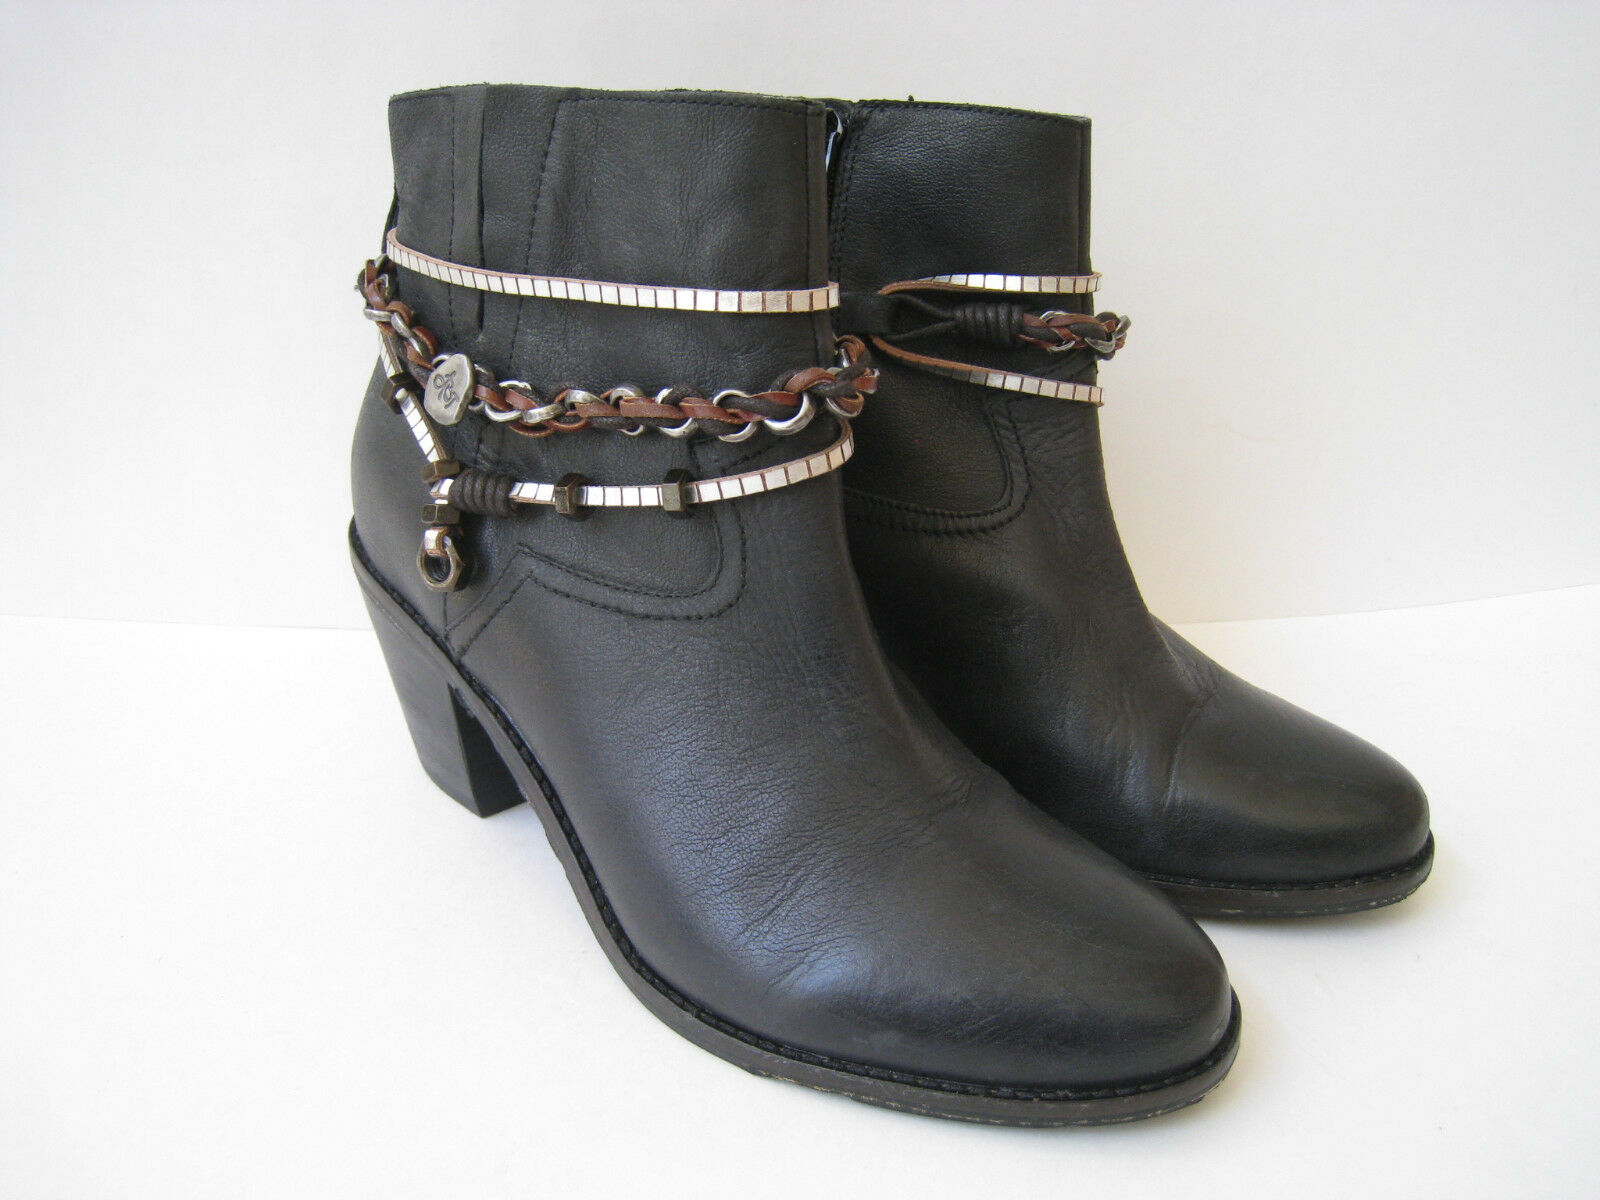 OTOT BELFAIR BLACK LEATHER CHAIN ACCENT STRAP ACCENT CHAIN ANKLE BOOT SIZE US 9.5M  HOT e8a4cf